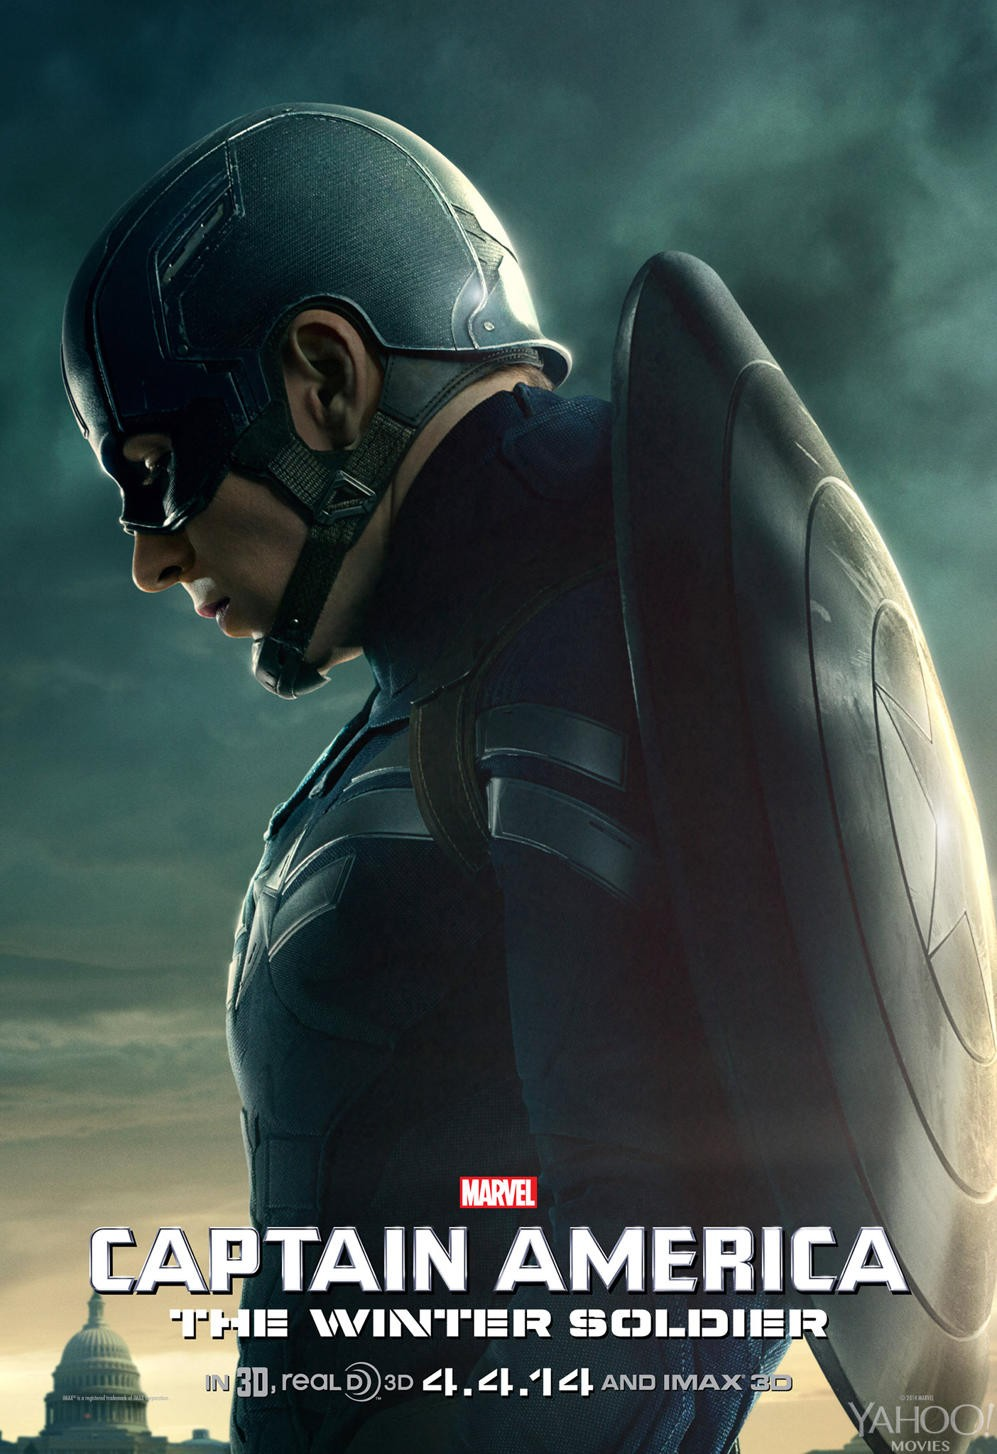 Captain America The Winter Soldier-Official Poster Banner PROMO XLRG-31JANEIRO2014-03